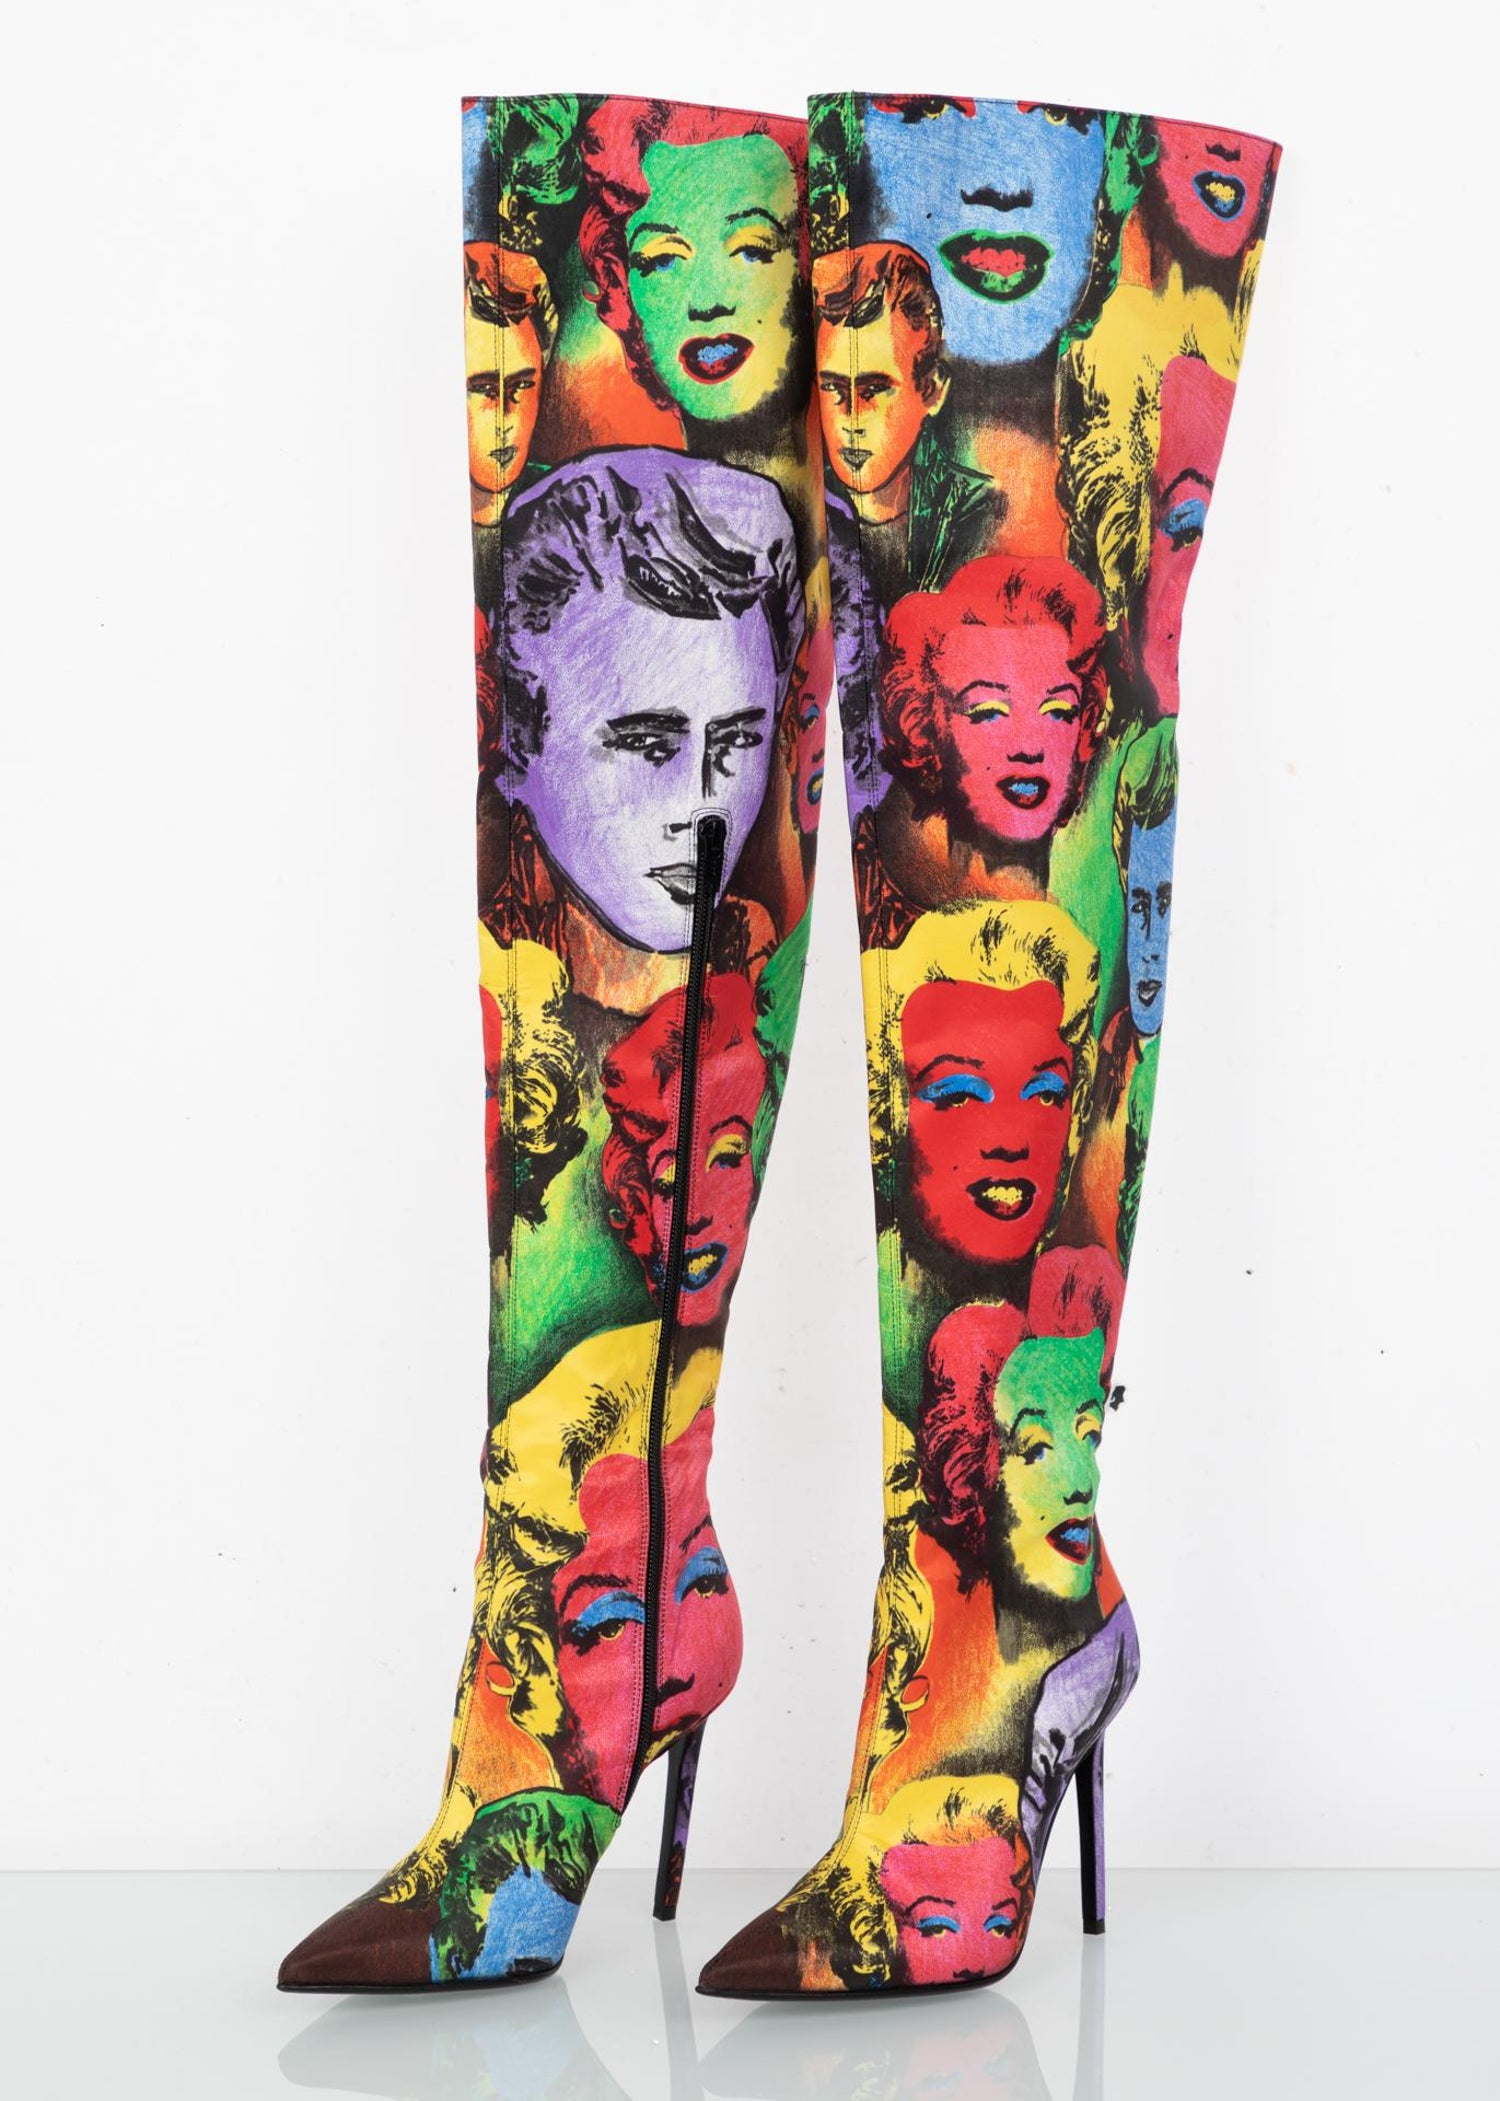 ee69d198fb0 Versace Pop Art Tribute Andy Warhol Print Silk Over The Knee Boots Size 36  6 For Sale at 1stdibs